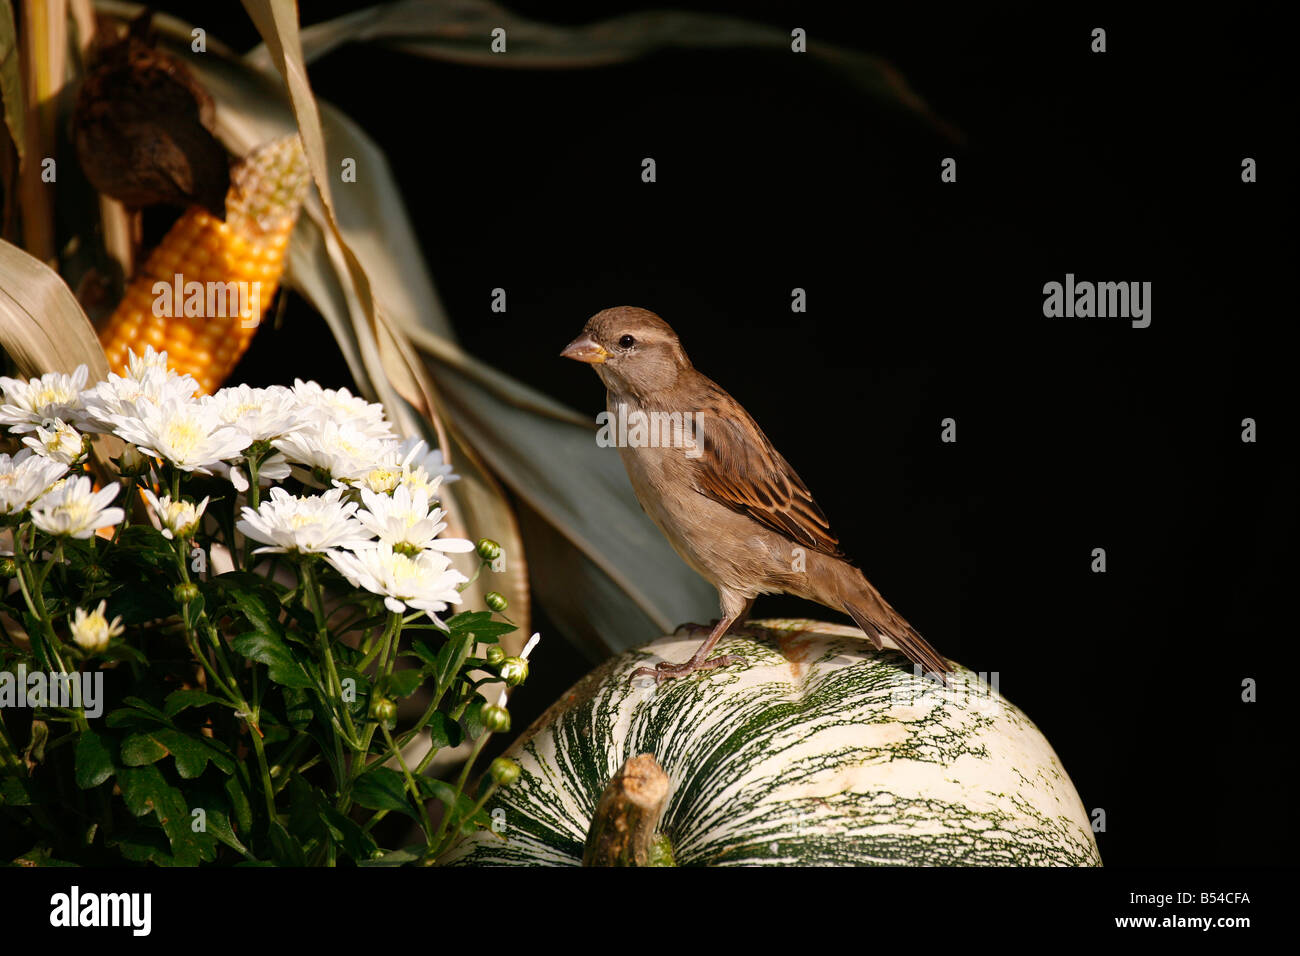 House Sparrow (Passer domesticus) female standing on pumpkin decoration for a harvest festival - Stock Image